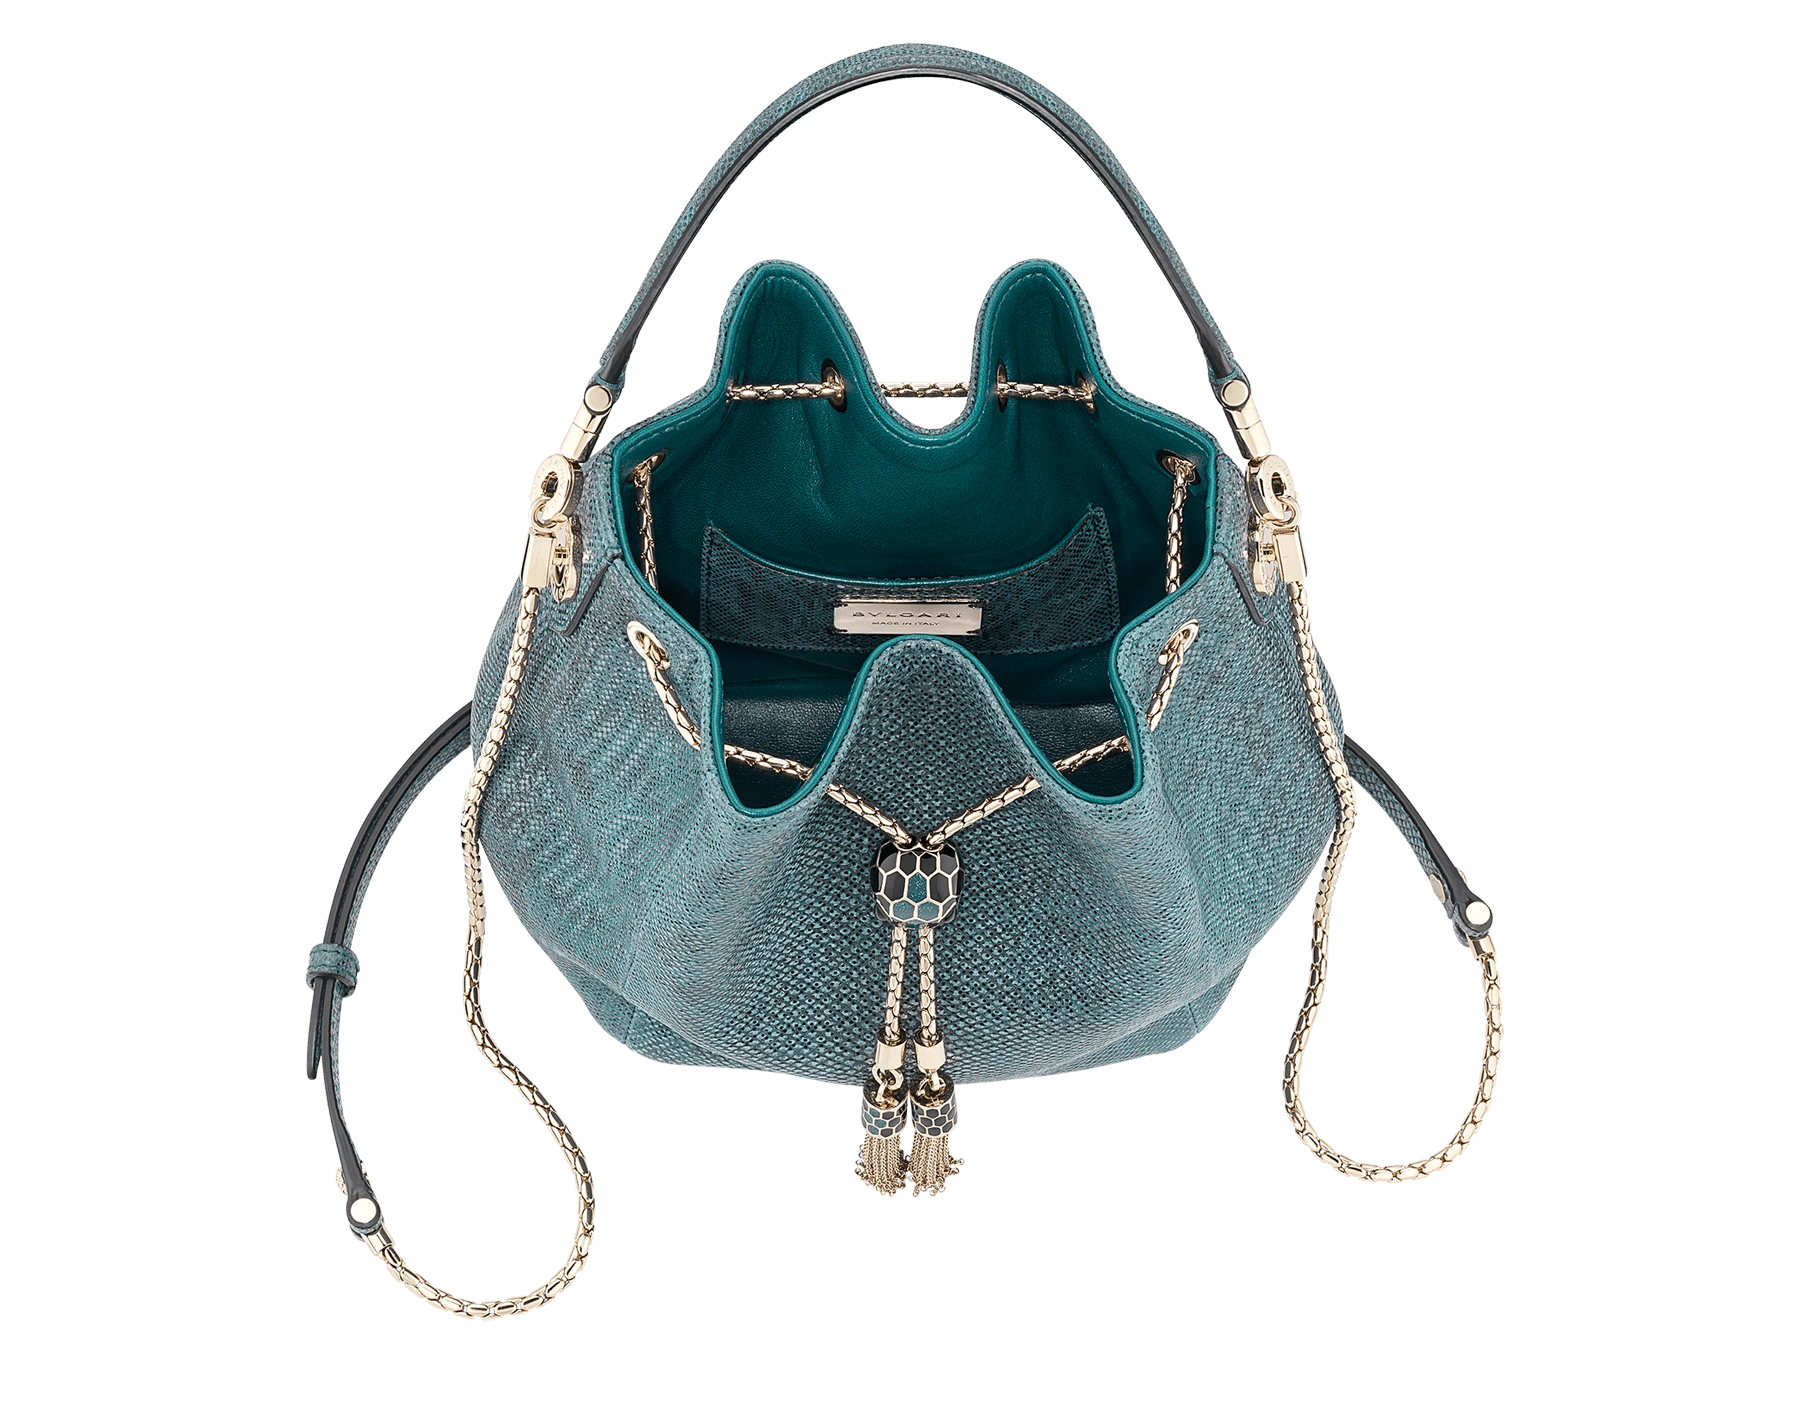 Bucket Serpenti Forever in deep jade metallic karung skin and deep jade nappa internal lining. Hardware in light gold plated brass and snakehead closure in black and glitter deep jade enamel, with eyes in black onyx. 287950 image 4